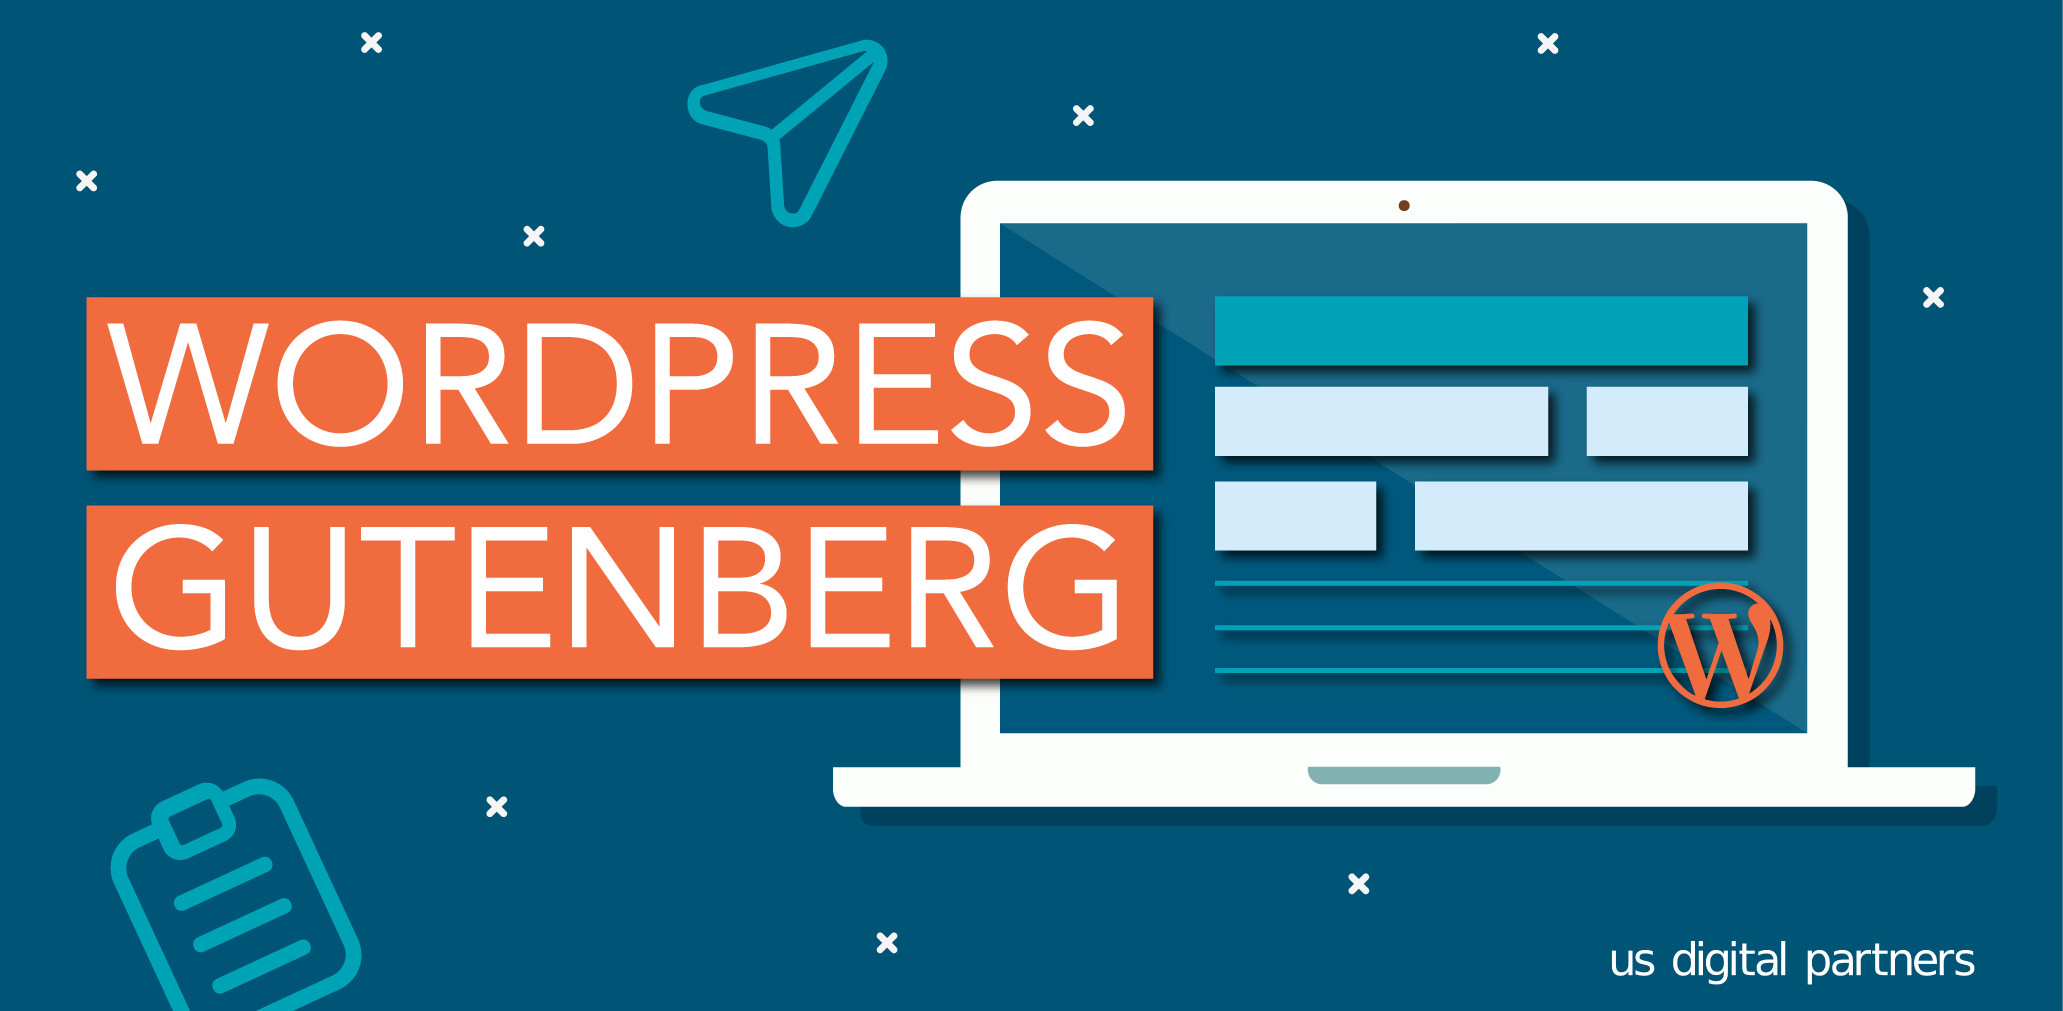 What You Need To Know About WordPress Gutenberg